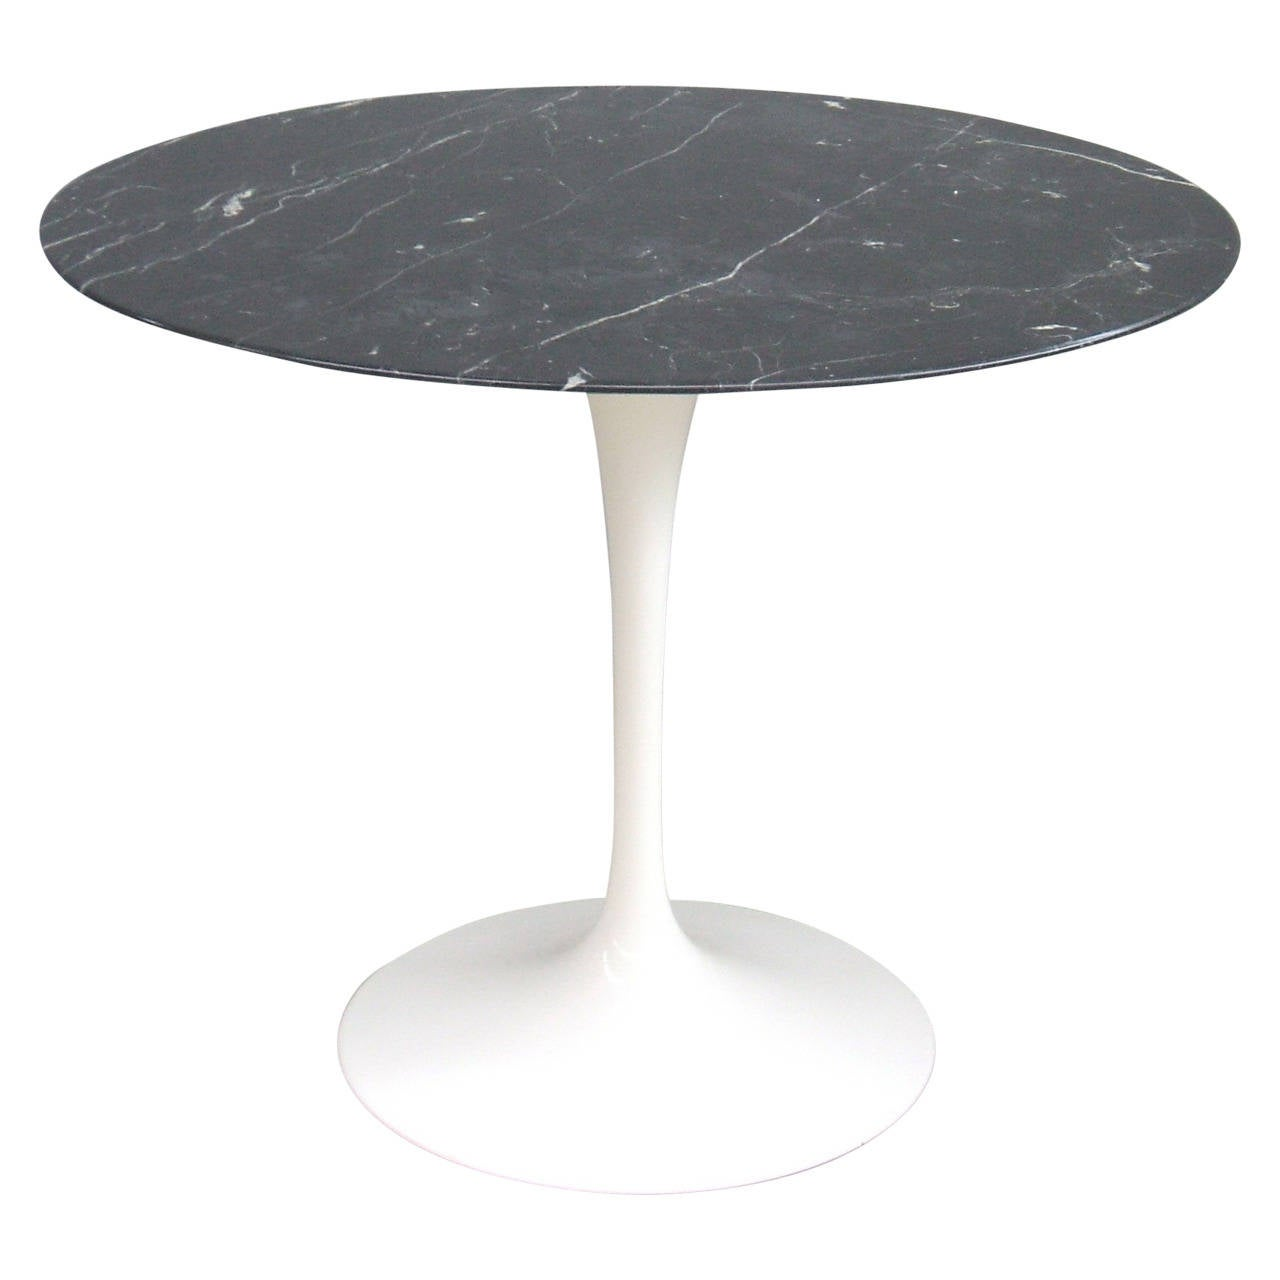 marble top tulip table by eero saarinen for knoll international at 1stdibs. Black Bedroom Furniture Sets. Home Design Ideas